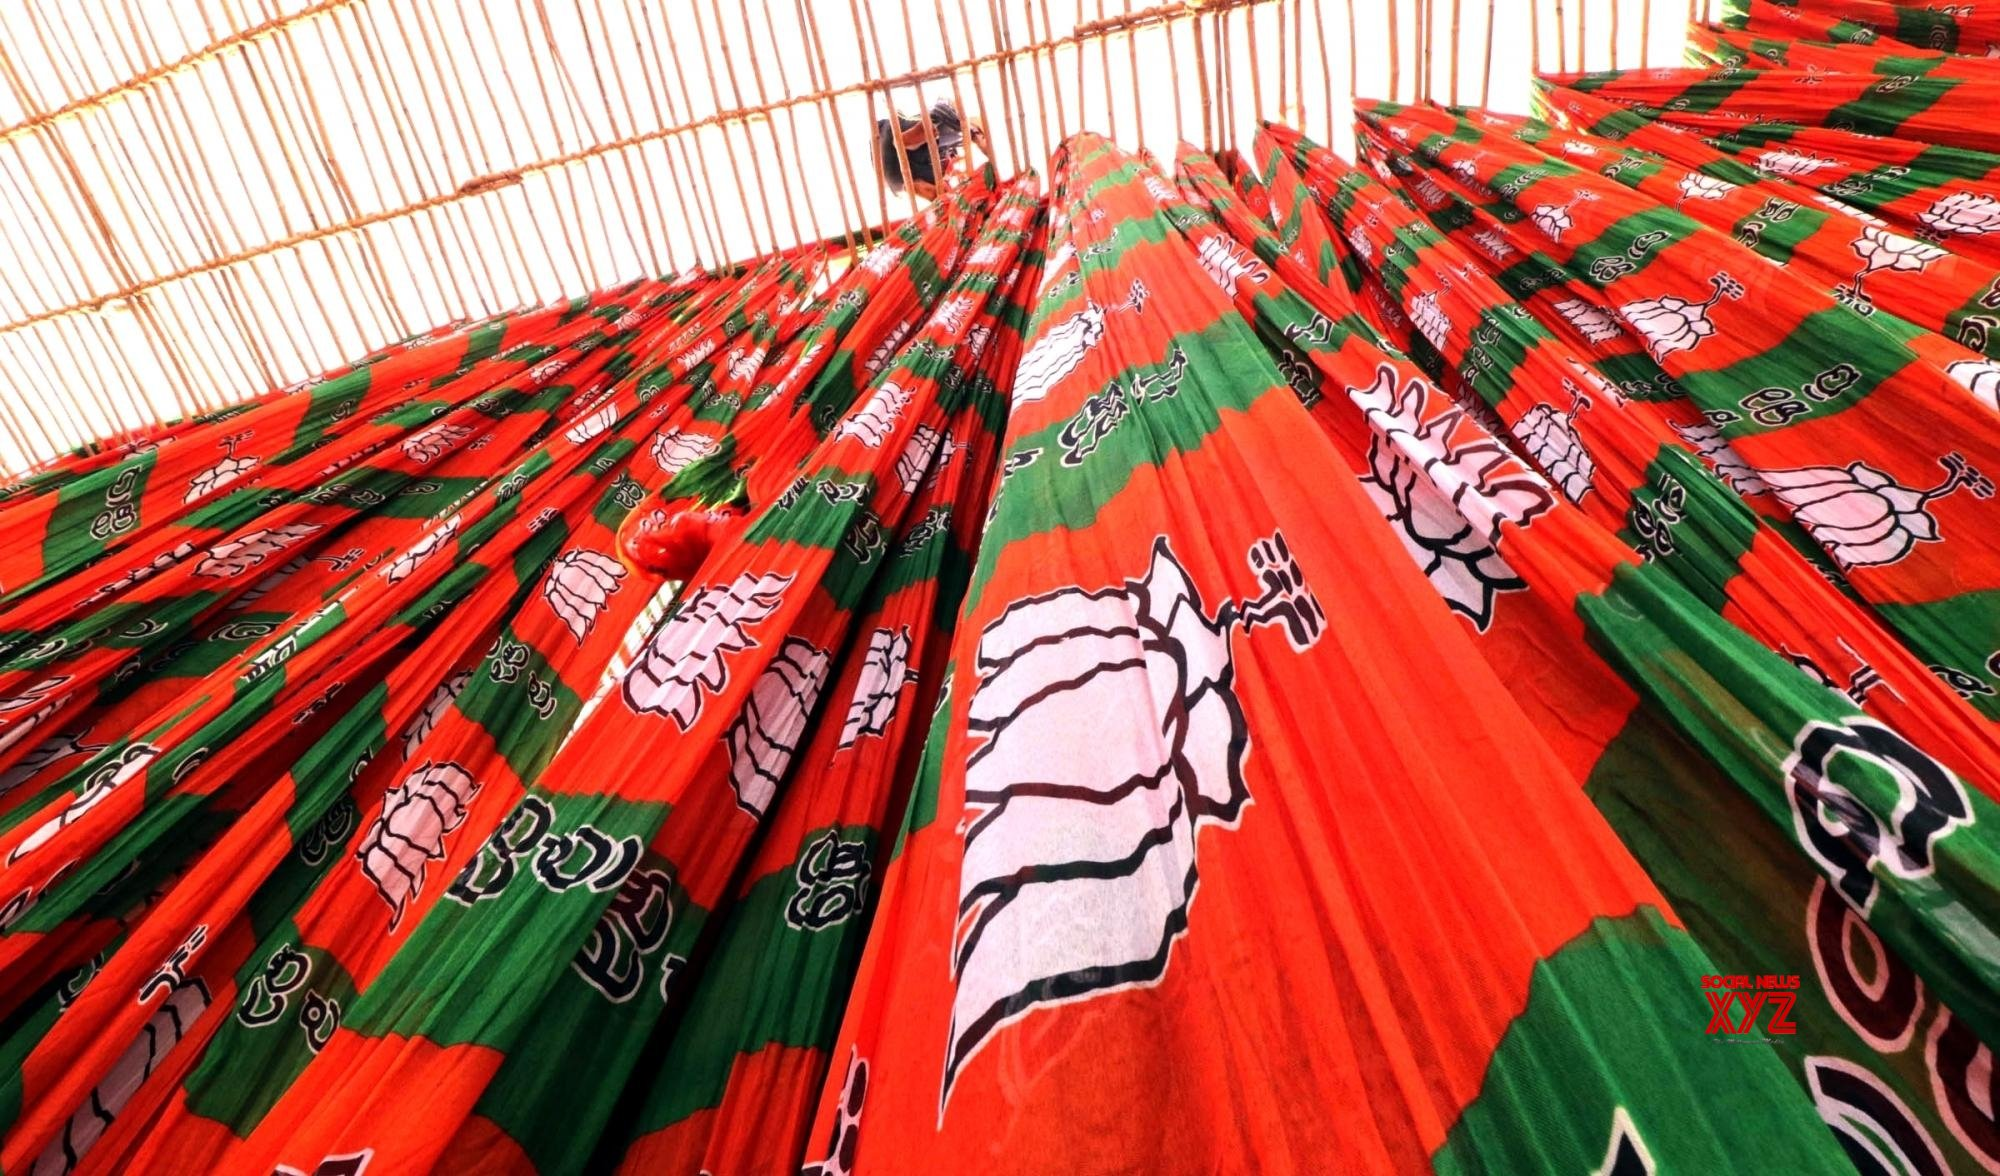 BJP's trinity in armoury for Bihar campaign: Pak, Art 370, Jinnah